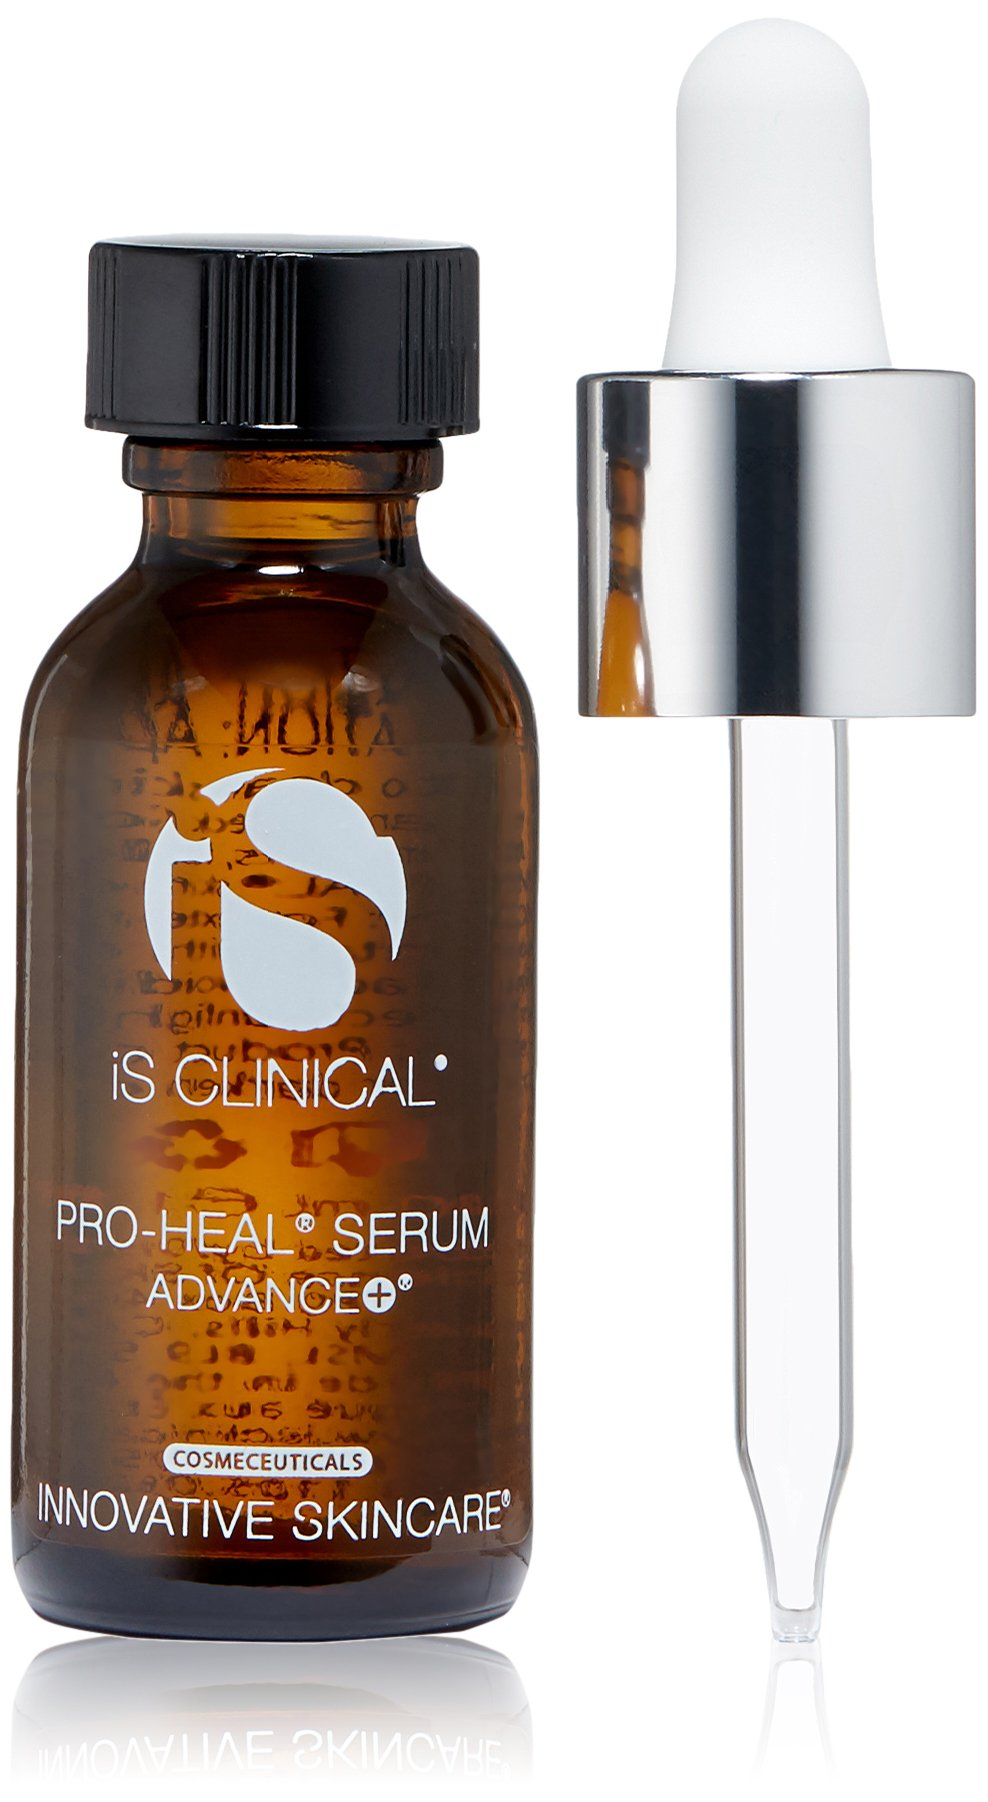 iS CLINICAL Pro-Heal Serum Advance+, 1 fl. oz. by iS CLINICAL